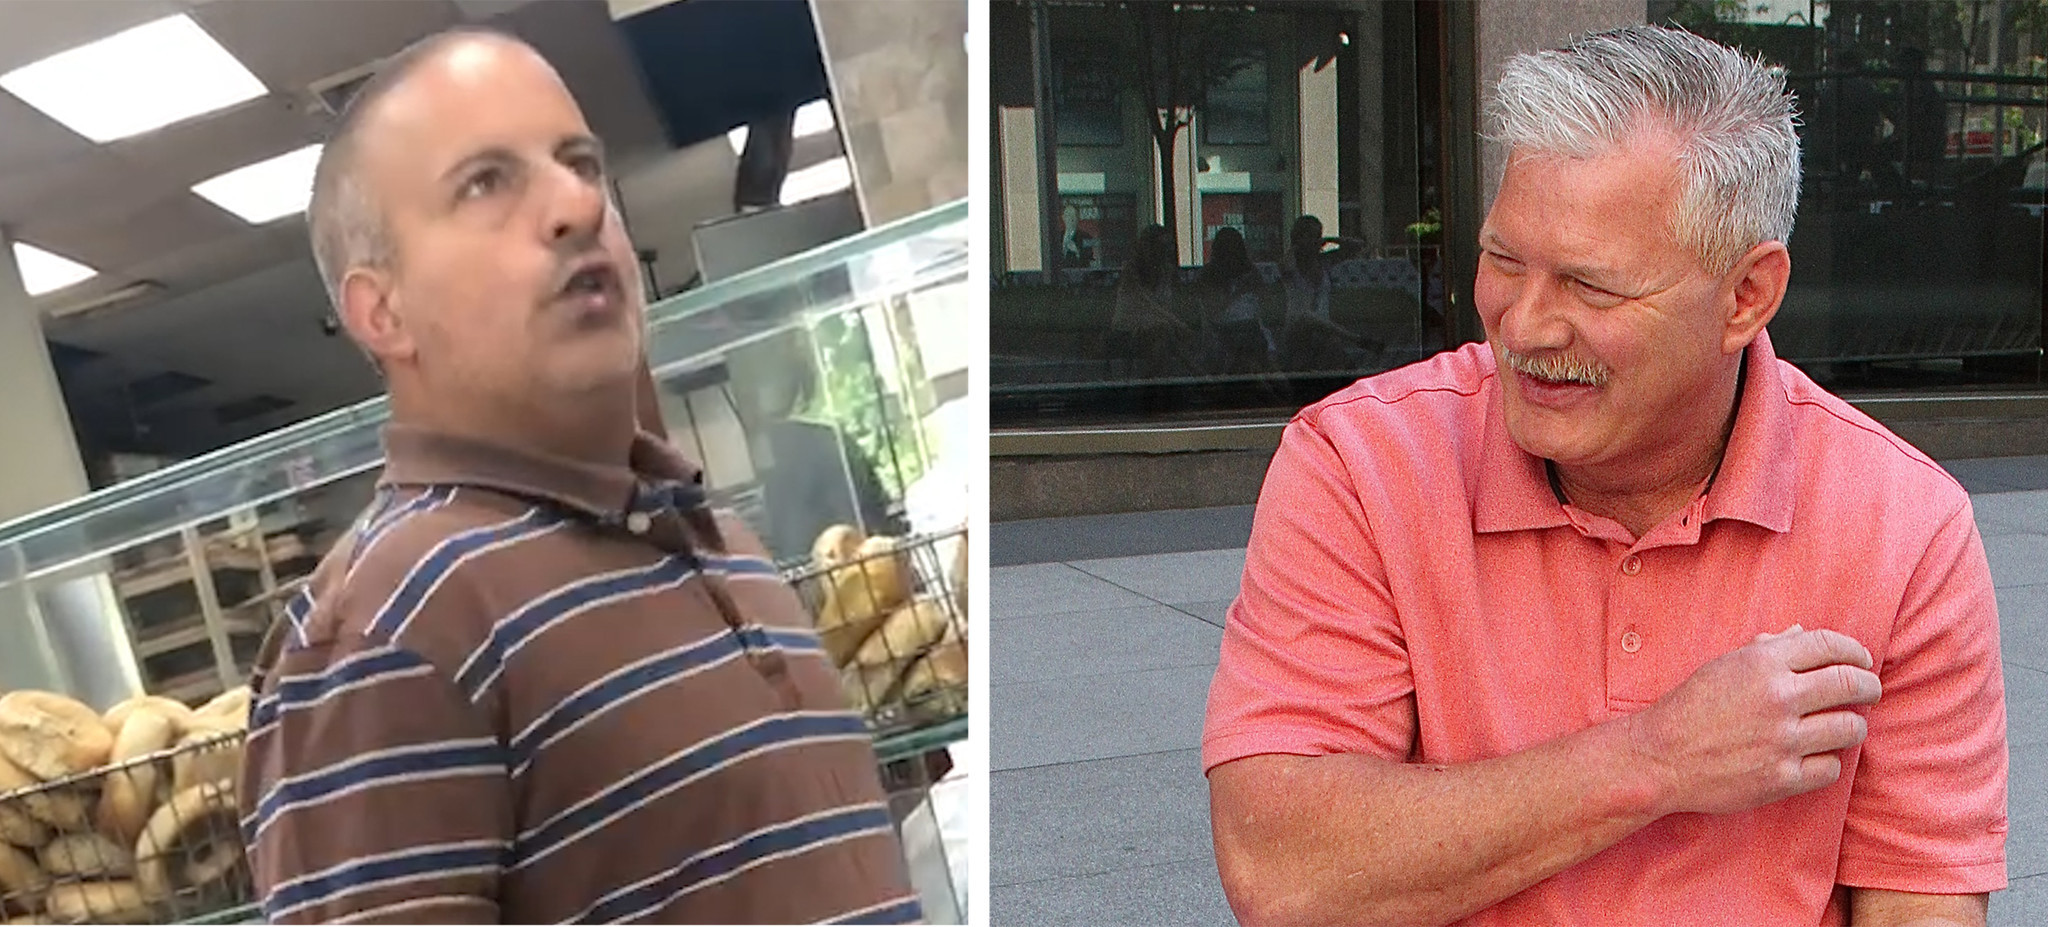 'Bagel Boss Guy' headed for Atlantic City bout with Lenny Dykstra